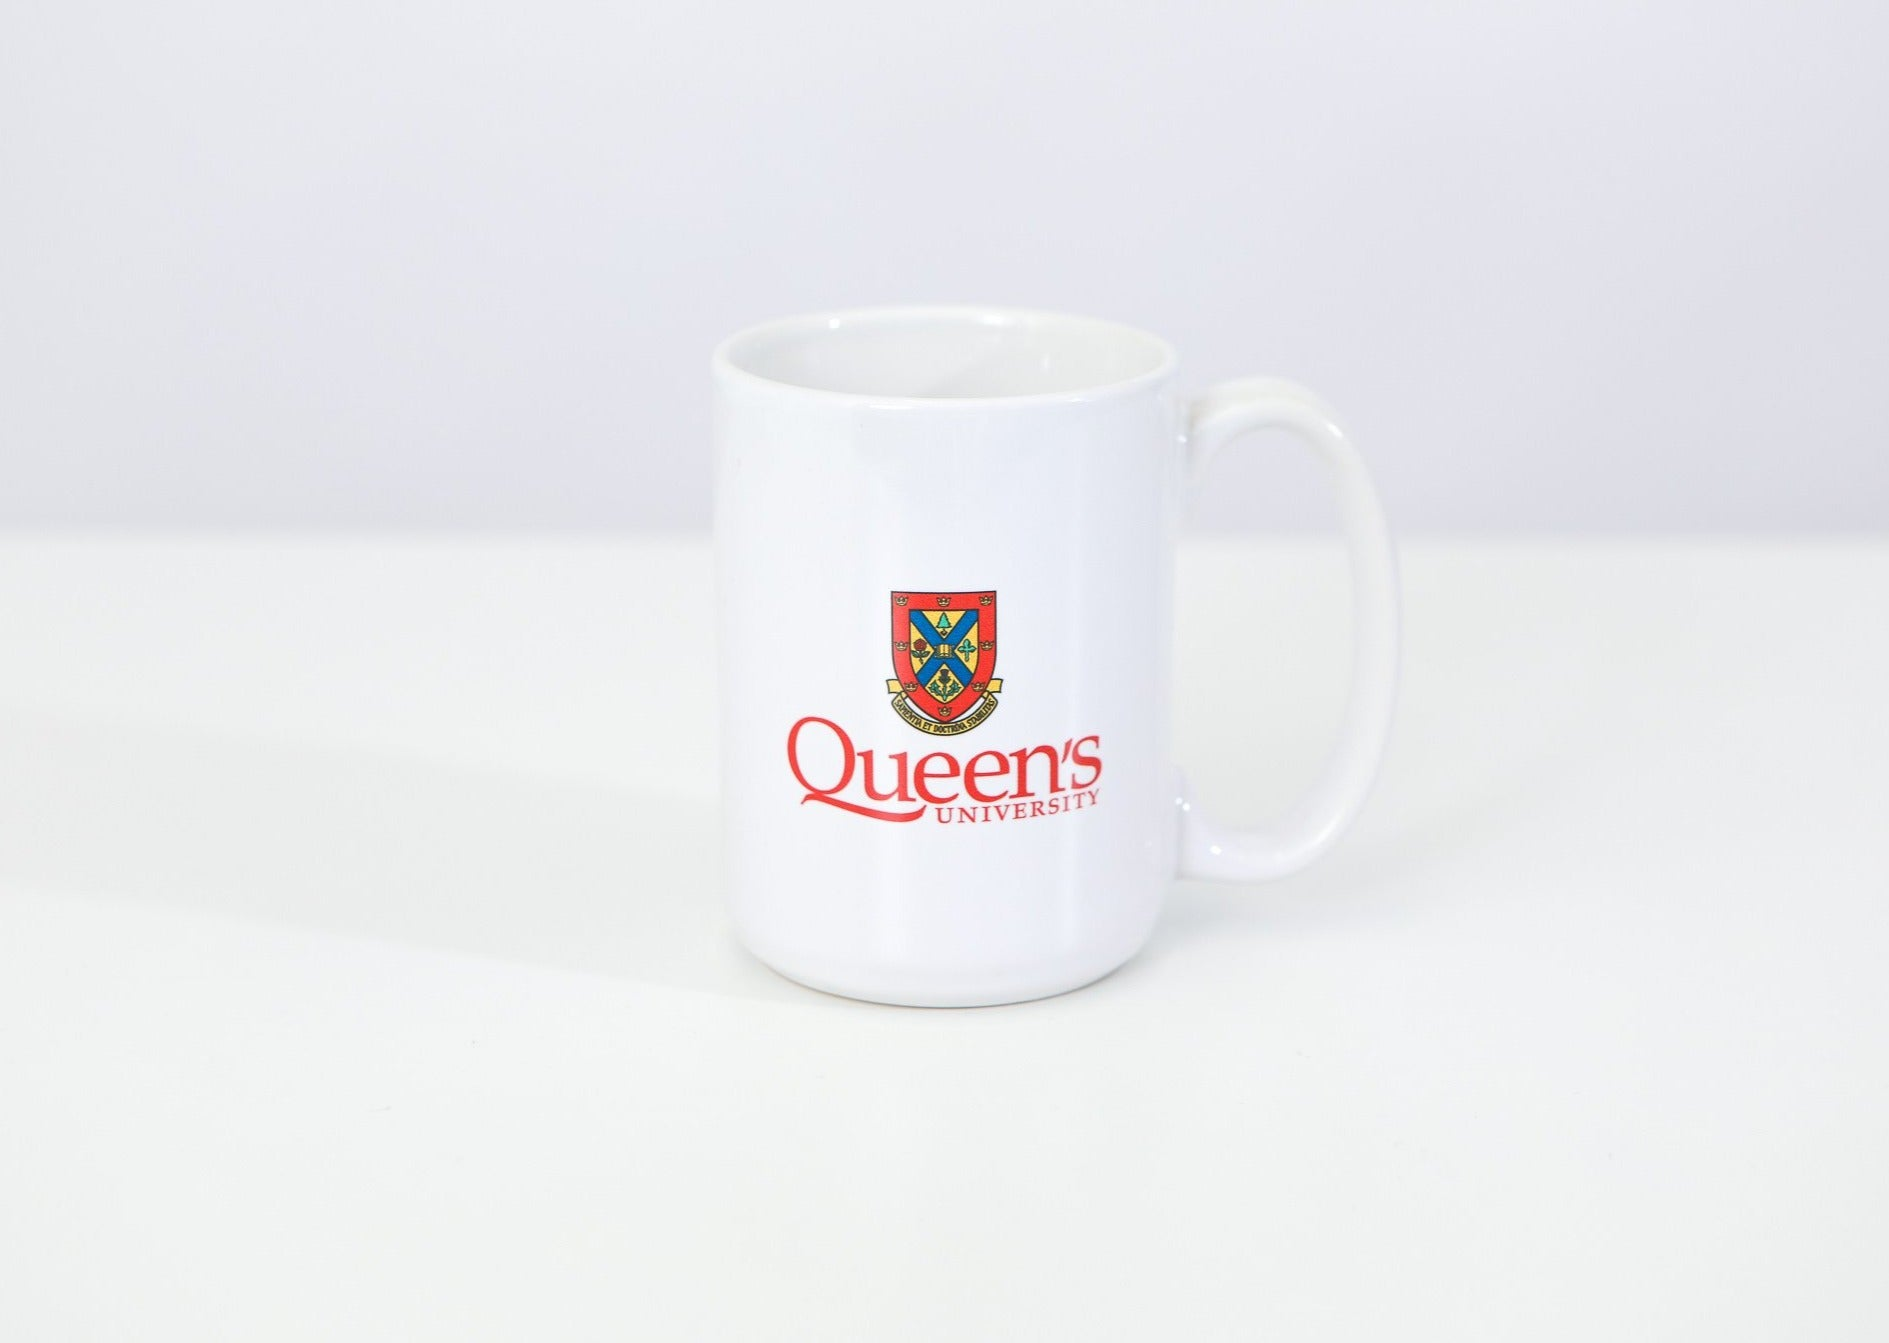 White ceramic coffee mug with the Queen's crest on it